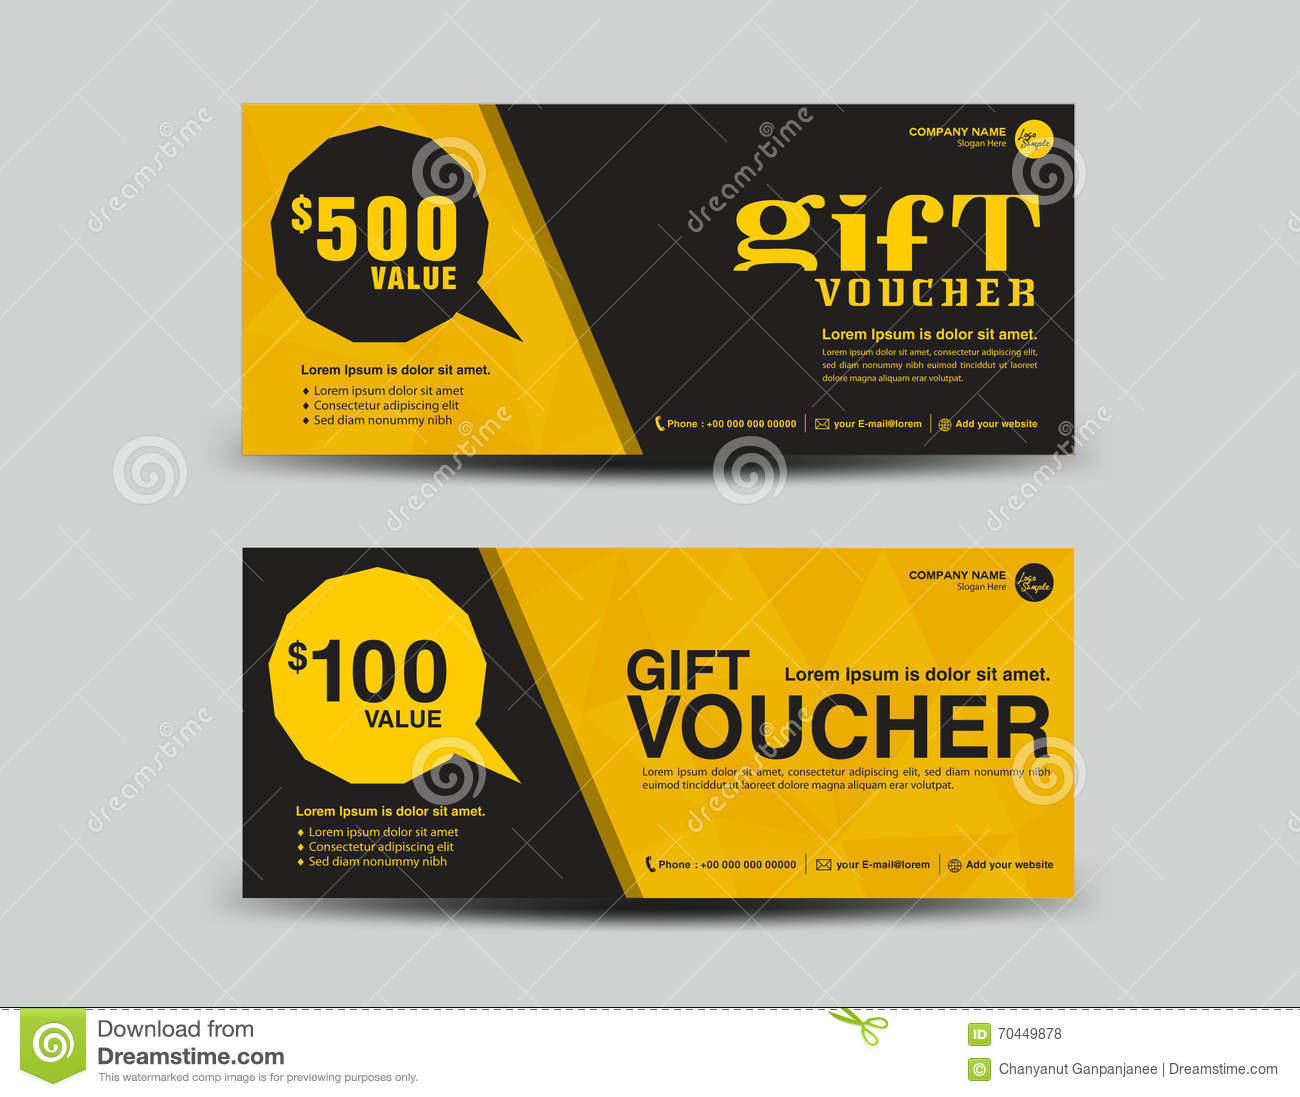 Gifts to india com discount coupon